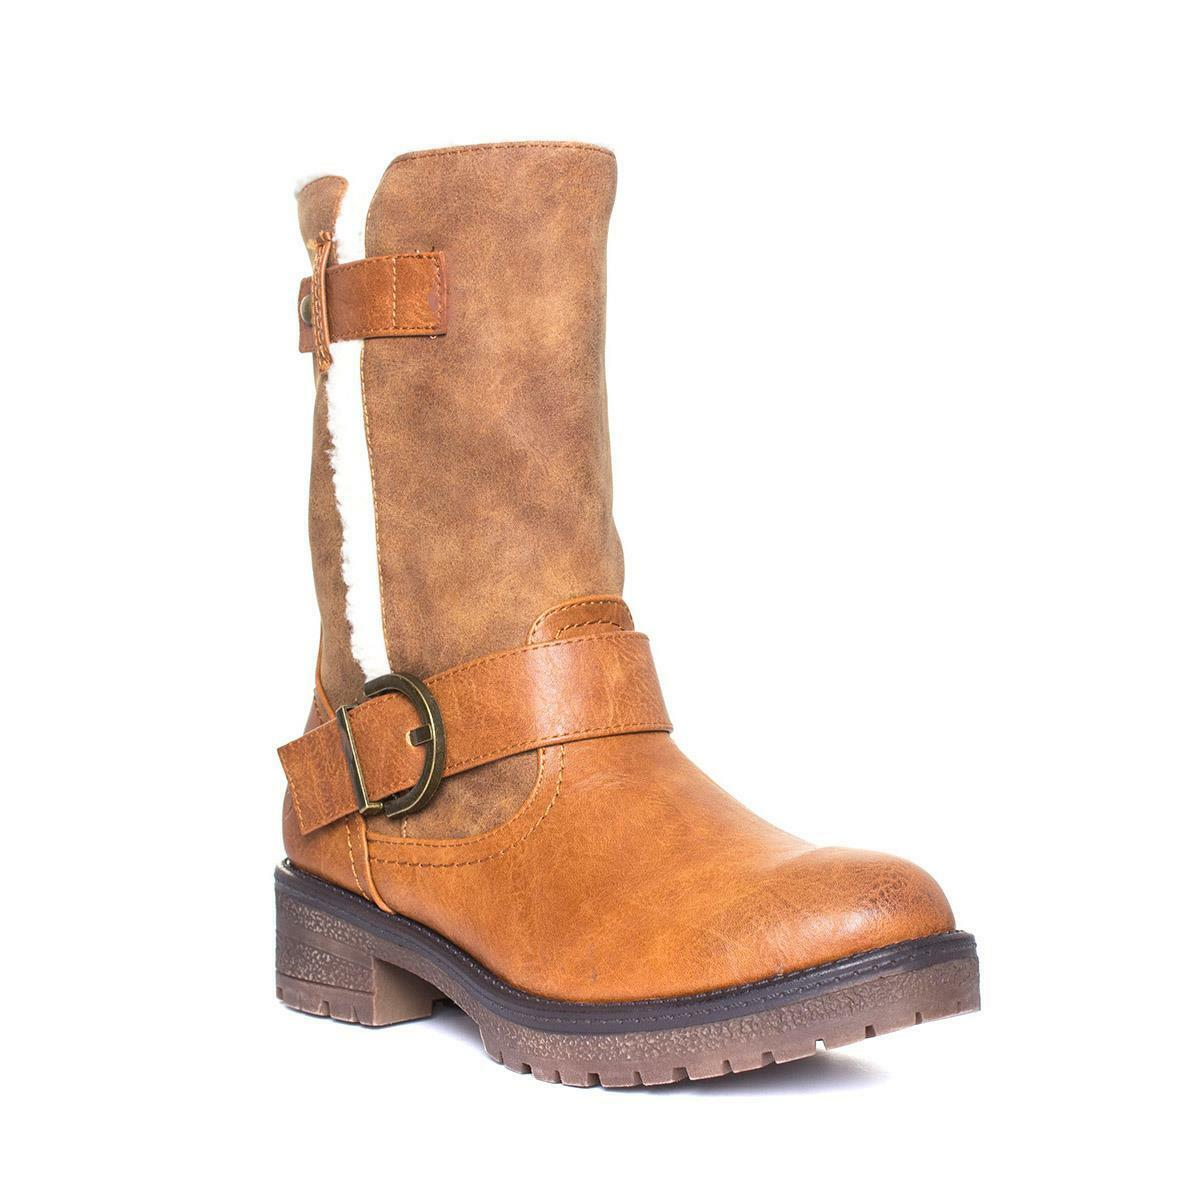 Heavenly Feet Tan Damenschuhe Tan Feet Calf Boot - Größes 3,4,5,6,7,8 cf819a